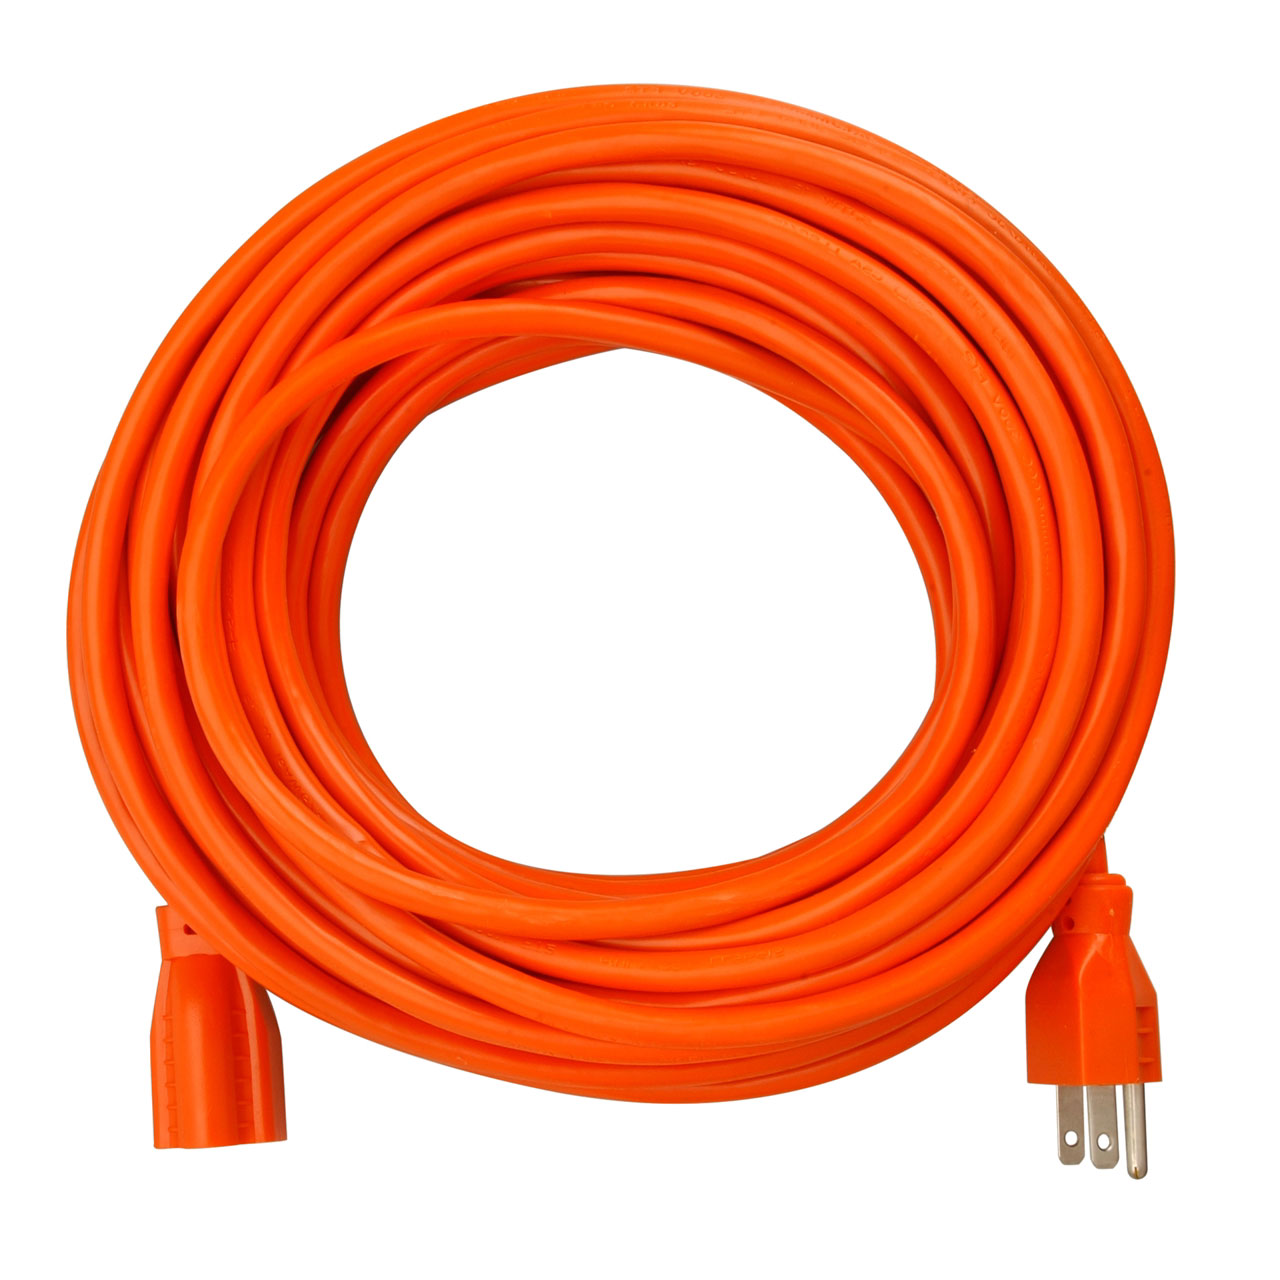 WestPak 20-0600 Orange Power Extension Cord 12-3 X 25 Foot Contractor Grade Outdoor